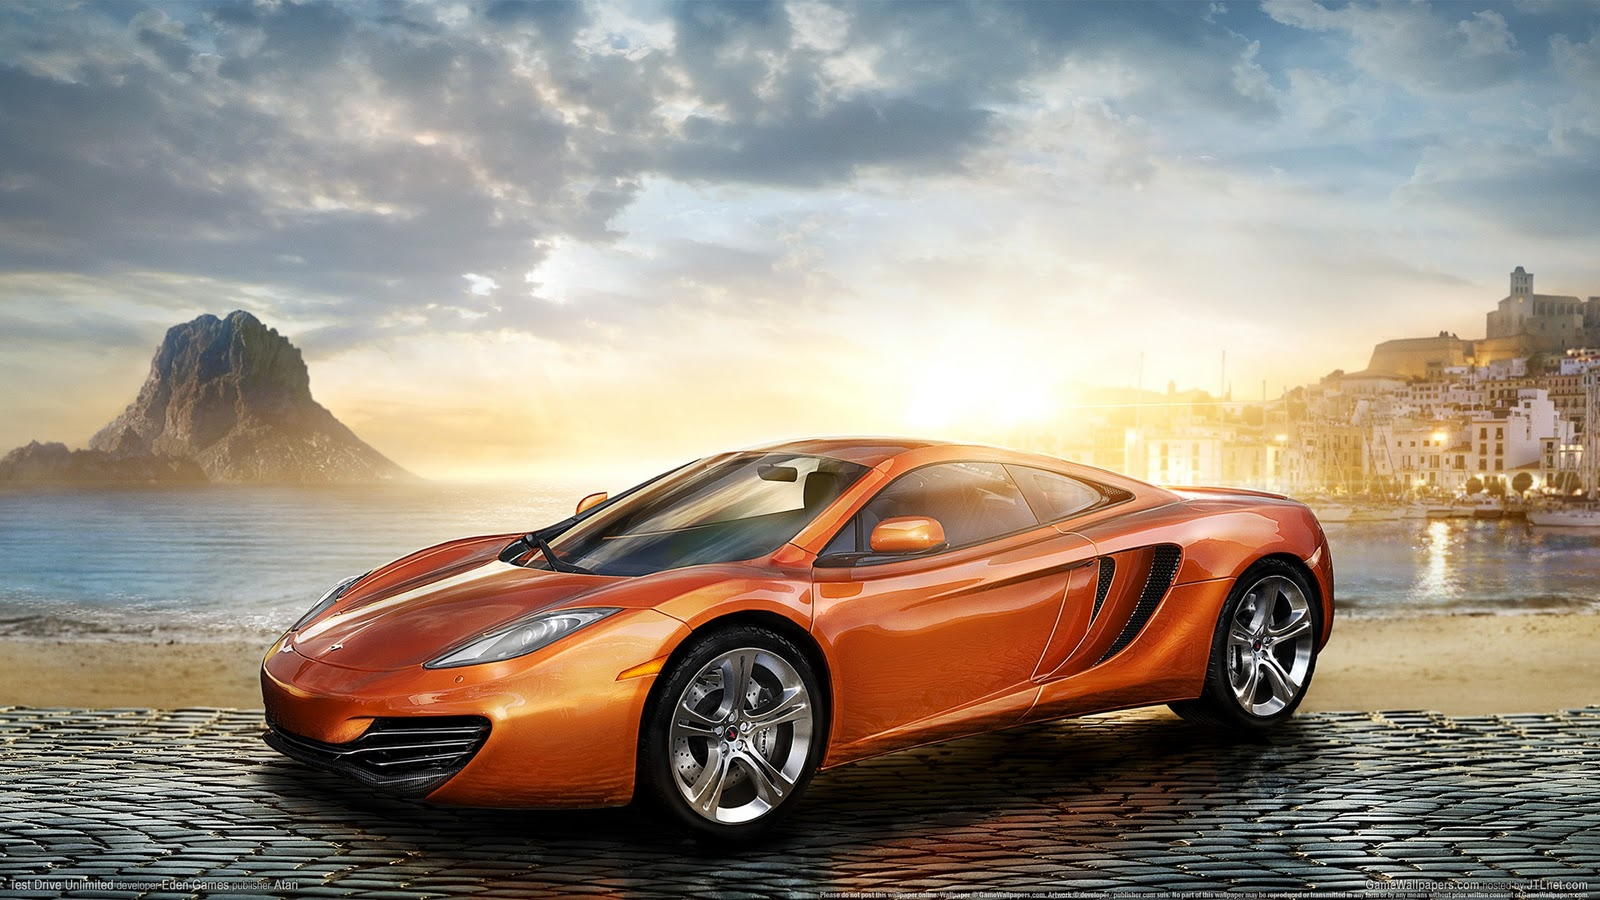 Test Drive Unlimited 2 HD desktop wallpaper High